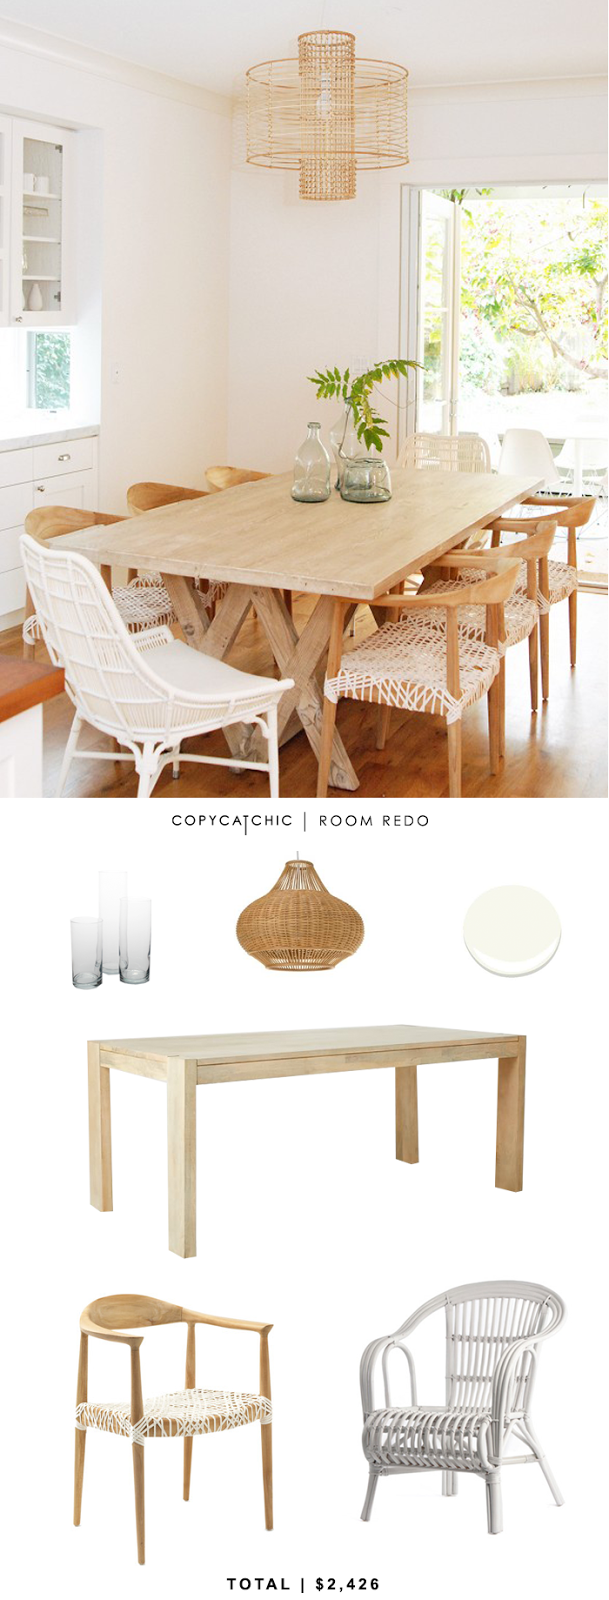 Copy Cat Chic Room Redo | Breezy Dining Room - copycatchic